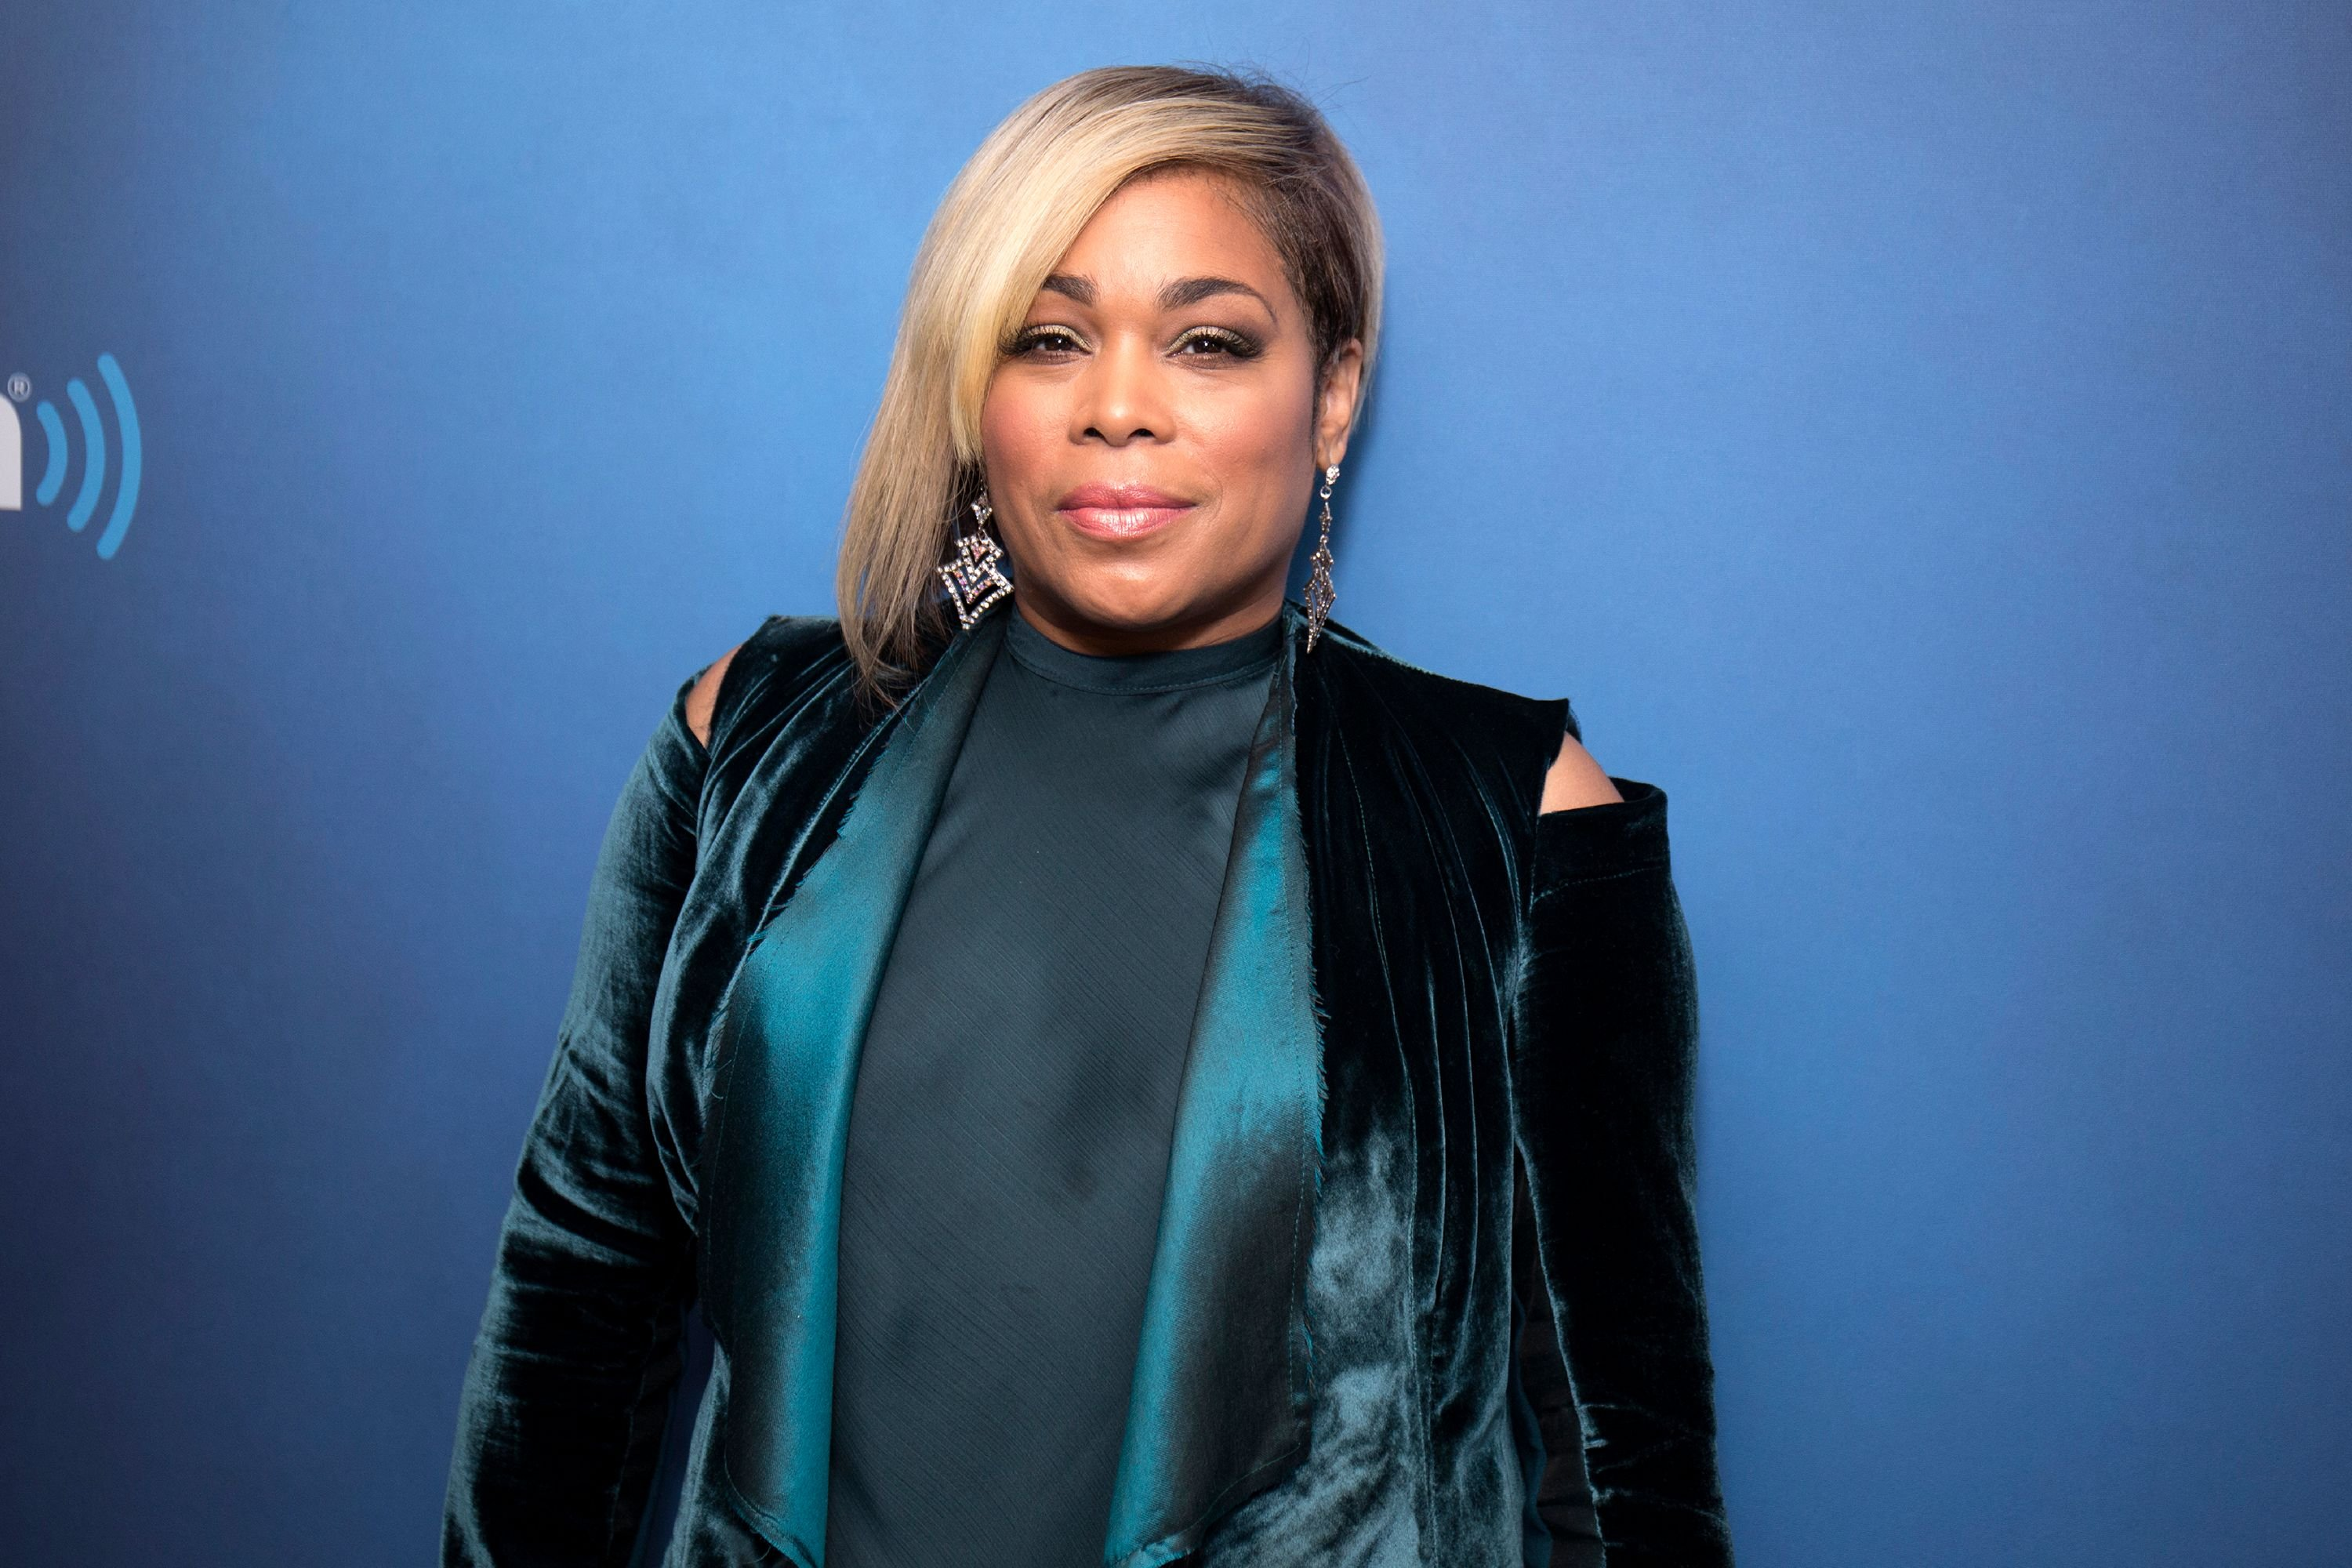 Tionne 'T-Boz' Watkins at SiriusXM Studios on September 12, 2017 | Photo: Getty Images